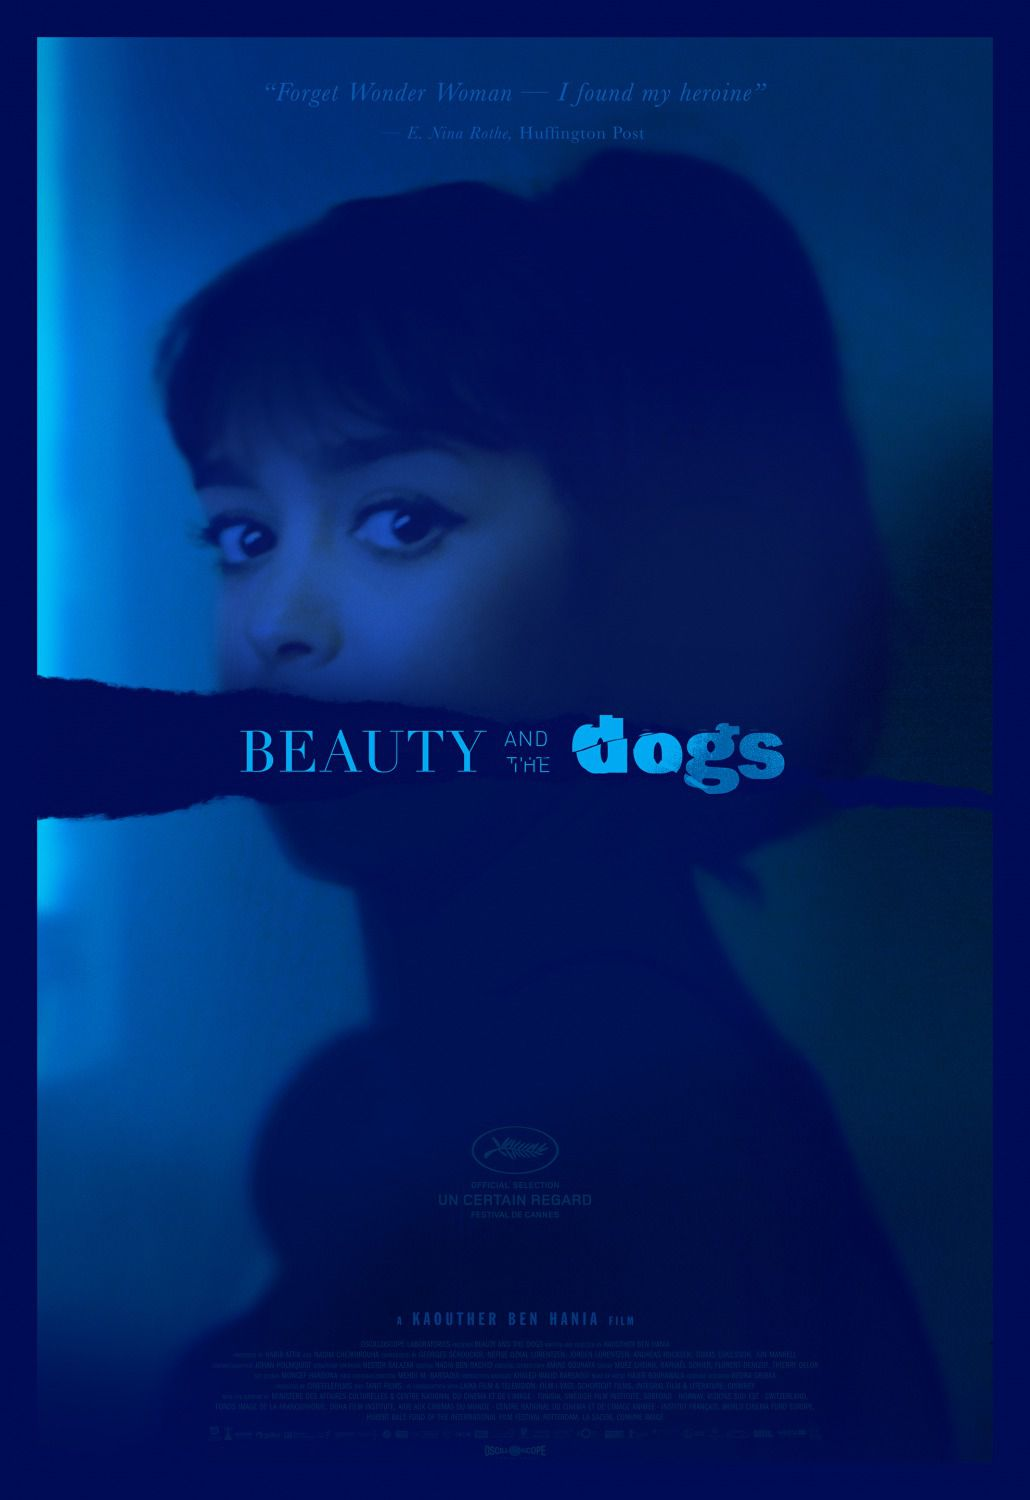 Beauty and the Dogs - Aala Kaf Ifrit - film poster